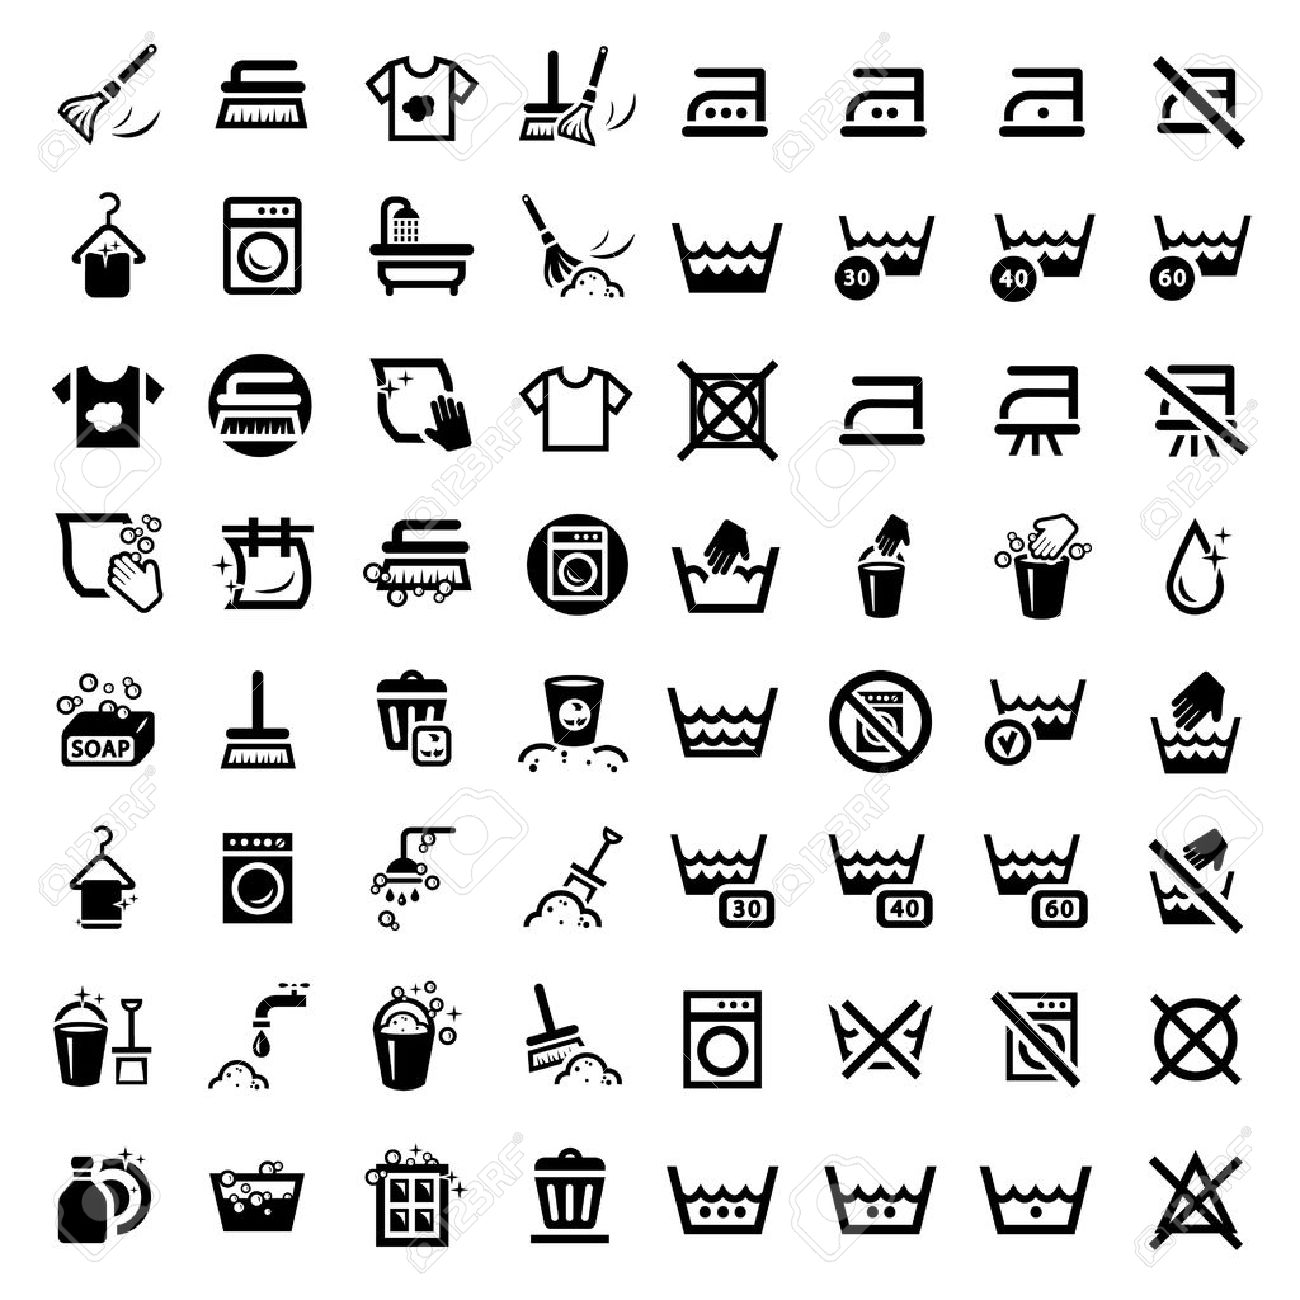 64 laundry and washing icons for web and mobile all elements